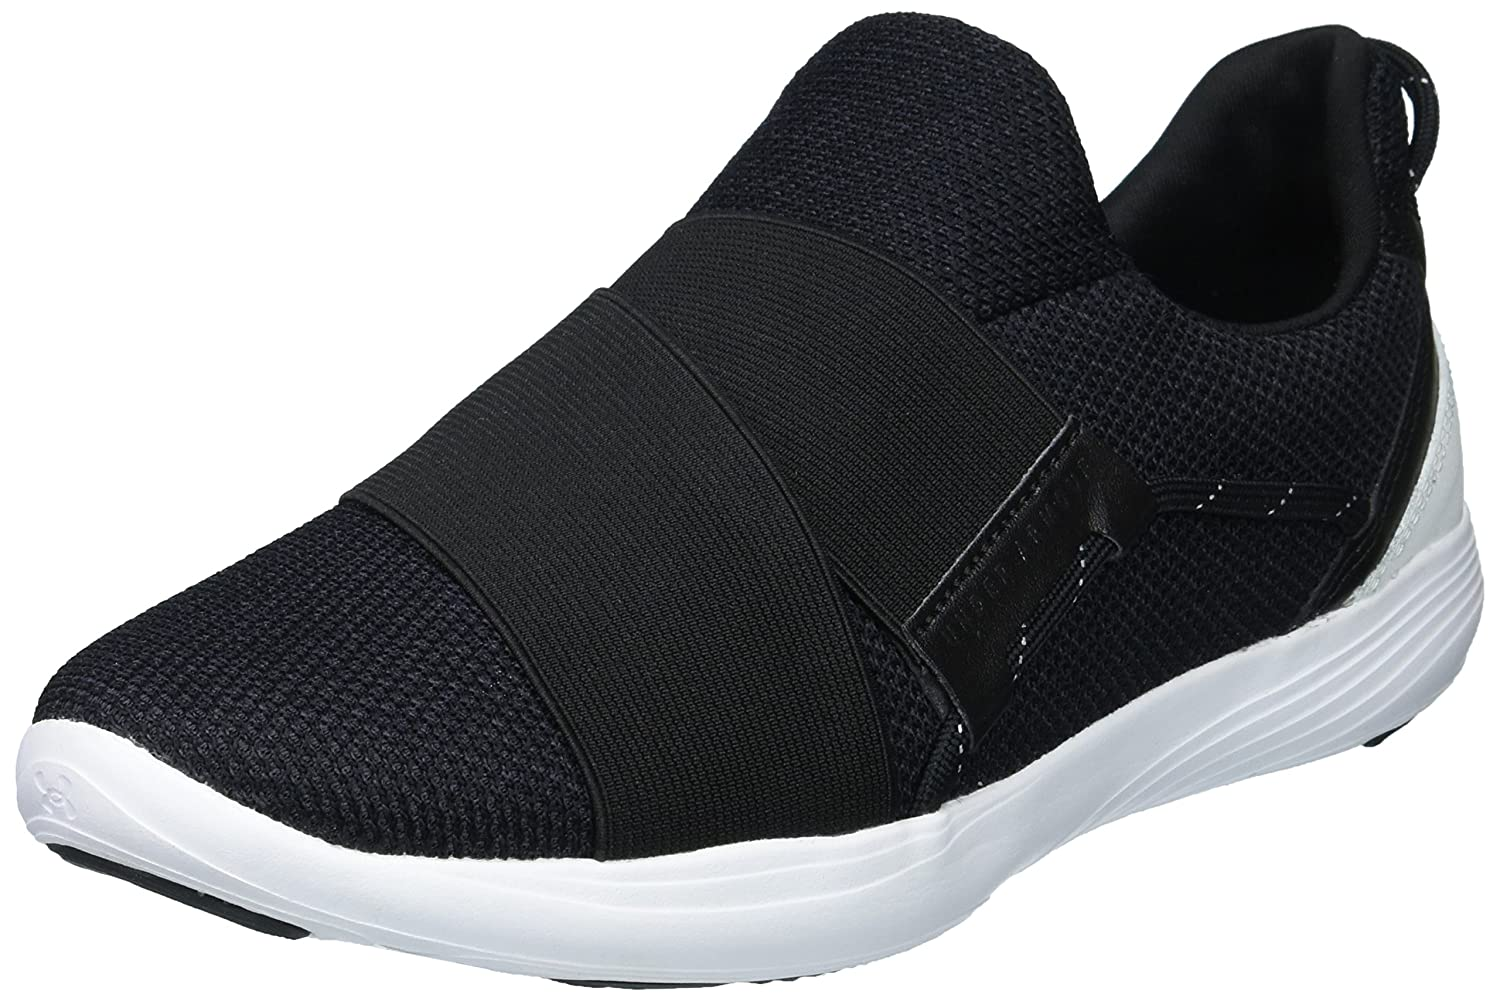 Under Armour Women's Precision X Sneaker B0719KRQM5 8 M US|Black (001)/White